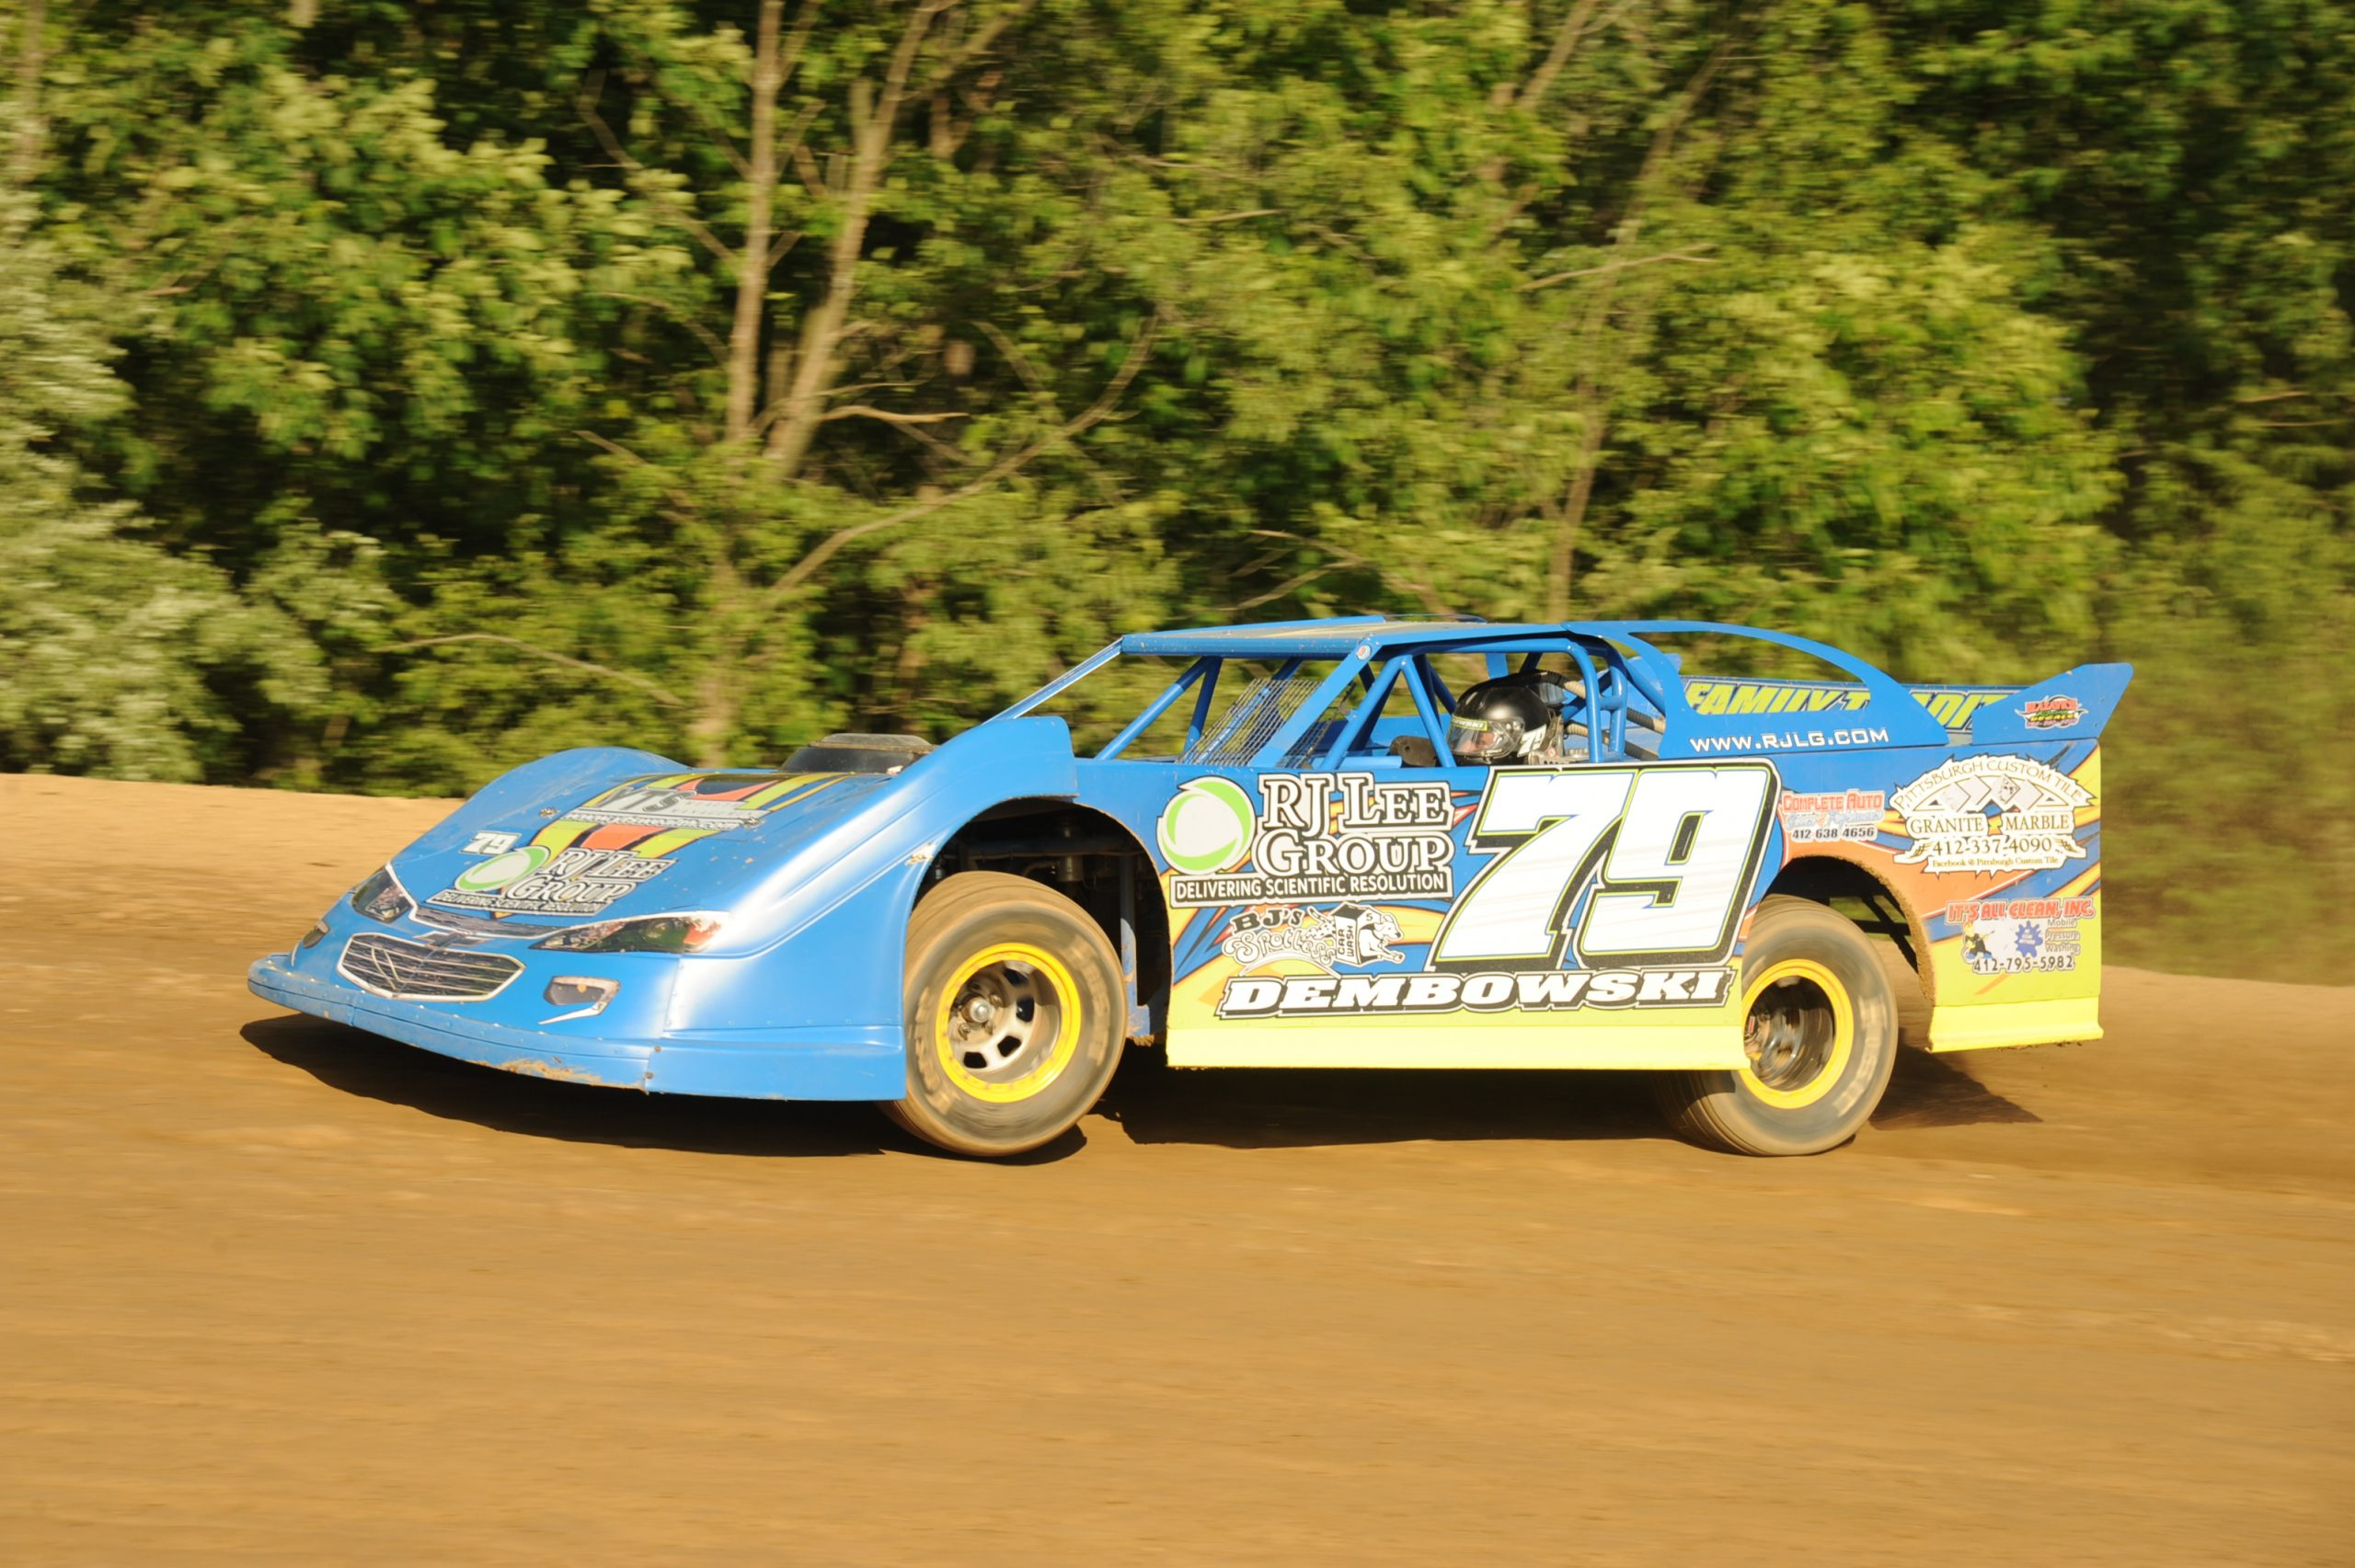 PRO Stock Special / Thunder on Dirt Vintage Modified